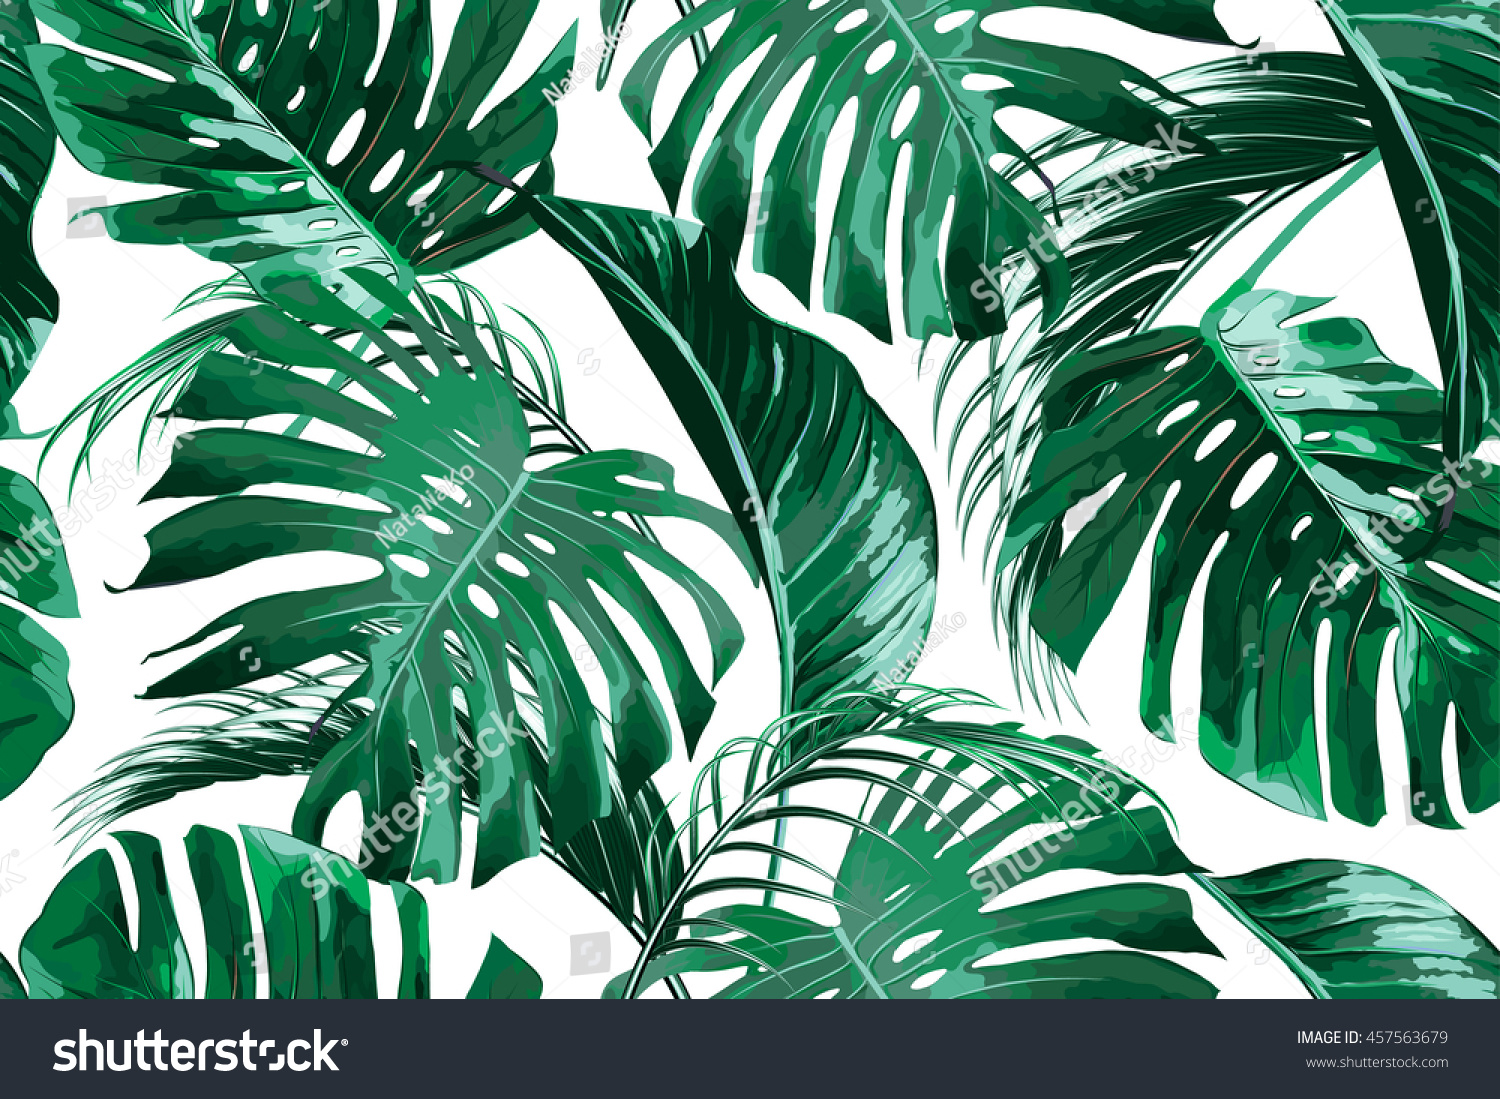 Tropical Palm Leaves Jungle Leaf Seamless Stock Vector Royalty Free 457563679